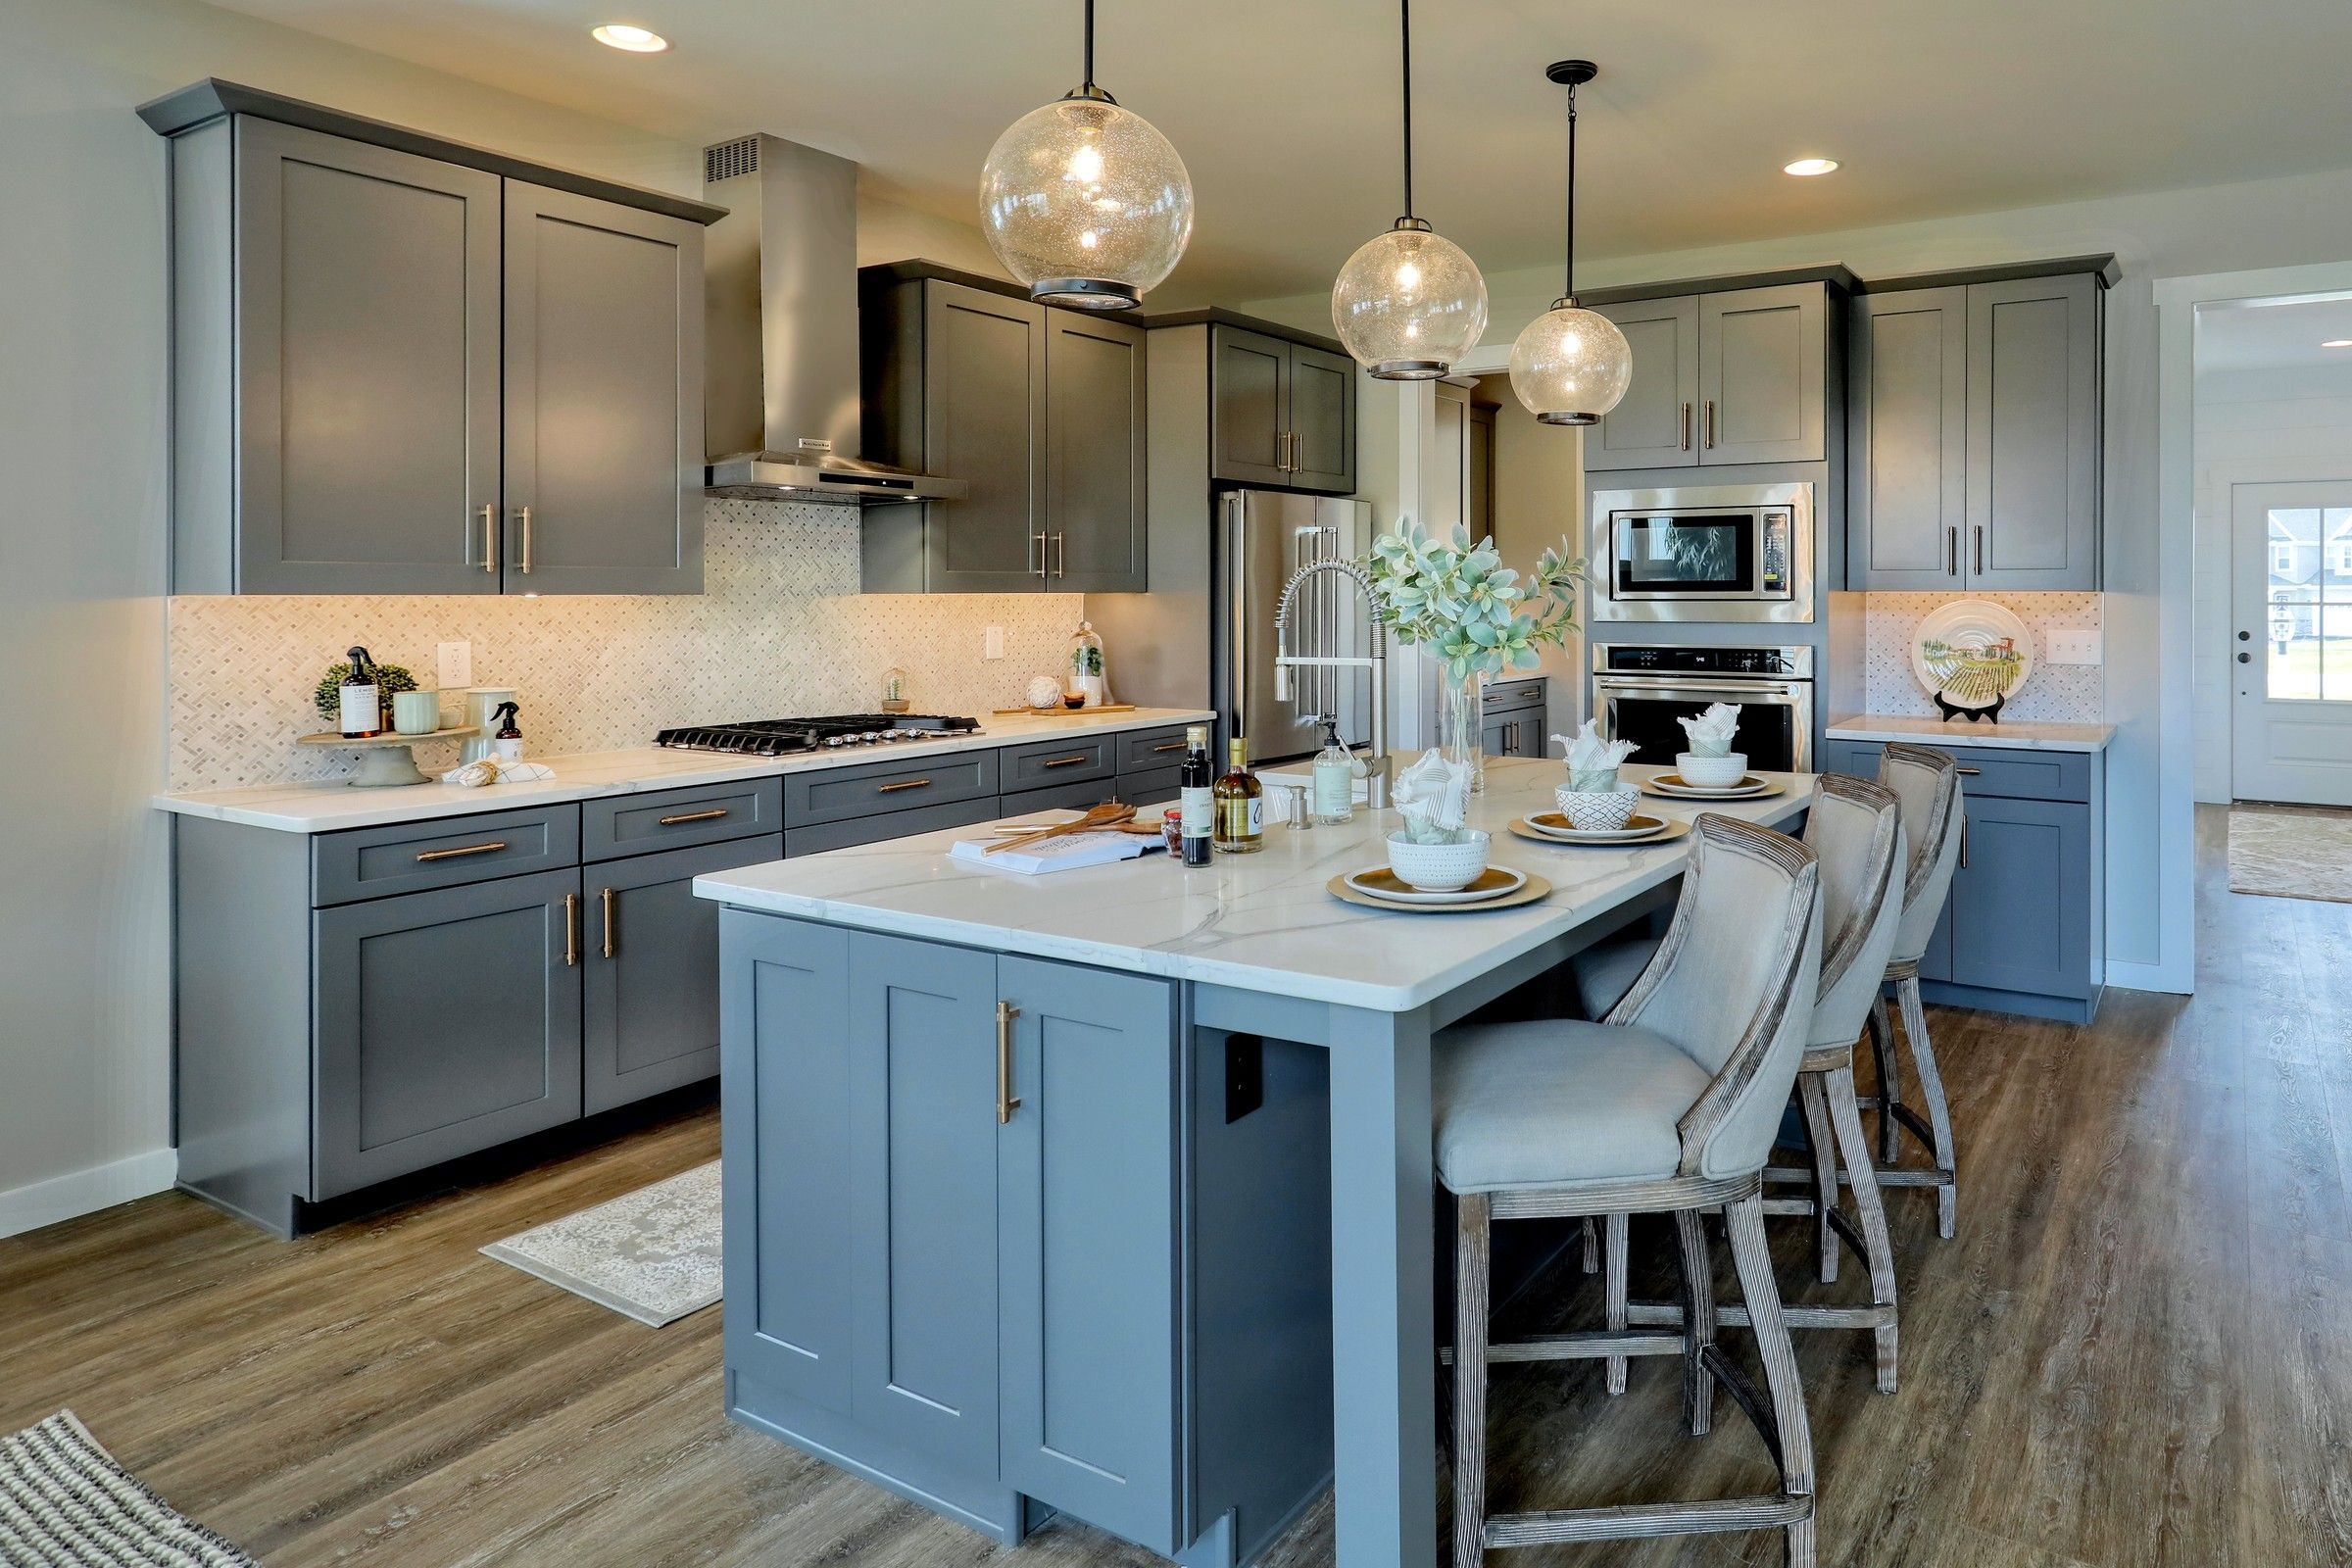 Kitchen featured in the Manchester Manor By Keystone Custom Homes in Lancaster, PA